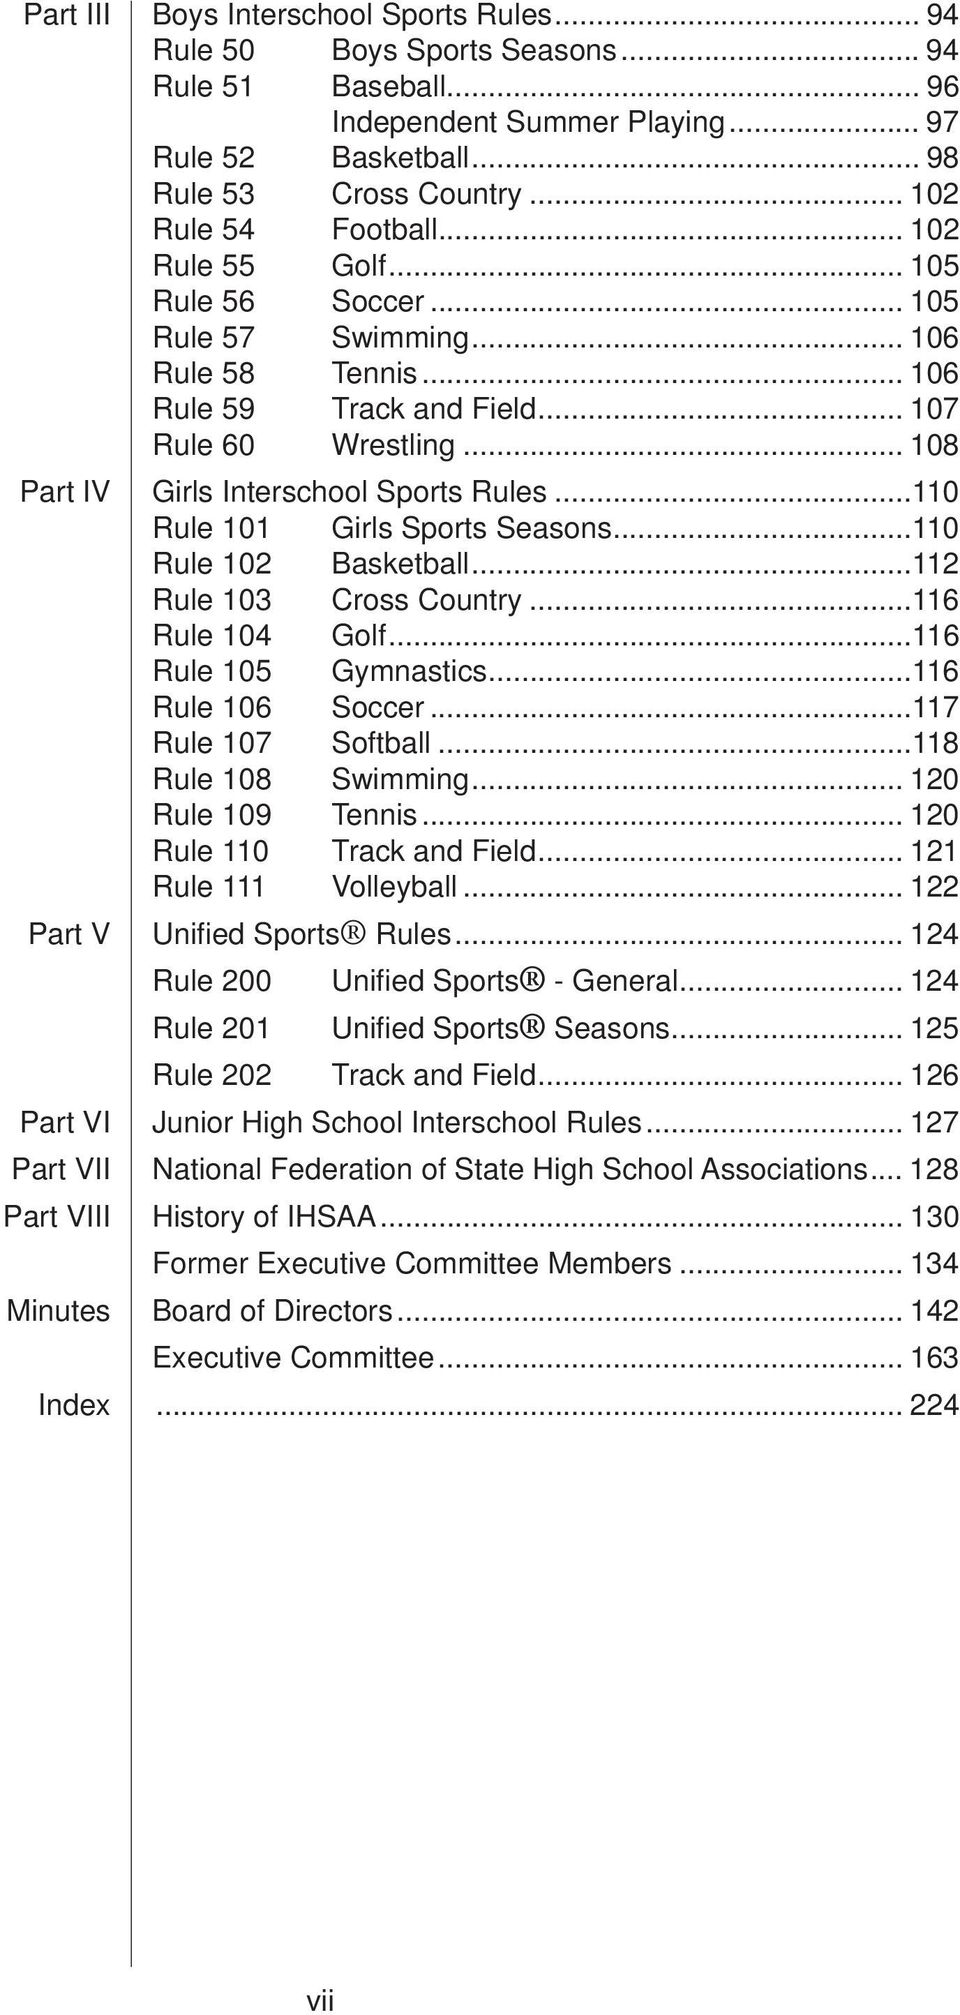 .. 108 Part IV Girls Interschool Sports Rules...110 Rule 101 Girls Sports Seasons...110 Rule 102 Basketball...112 Rule 103 Cross Country...116 Rule 104 Golf...116 Rule 105 Gymnastics.